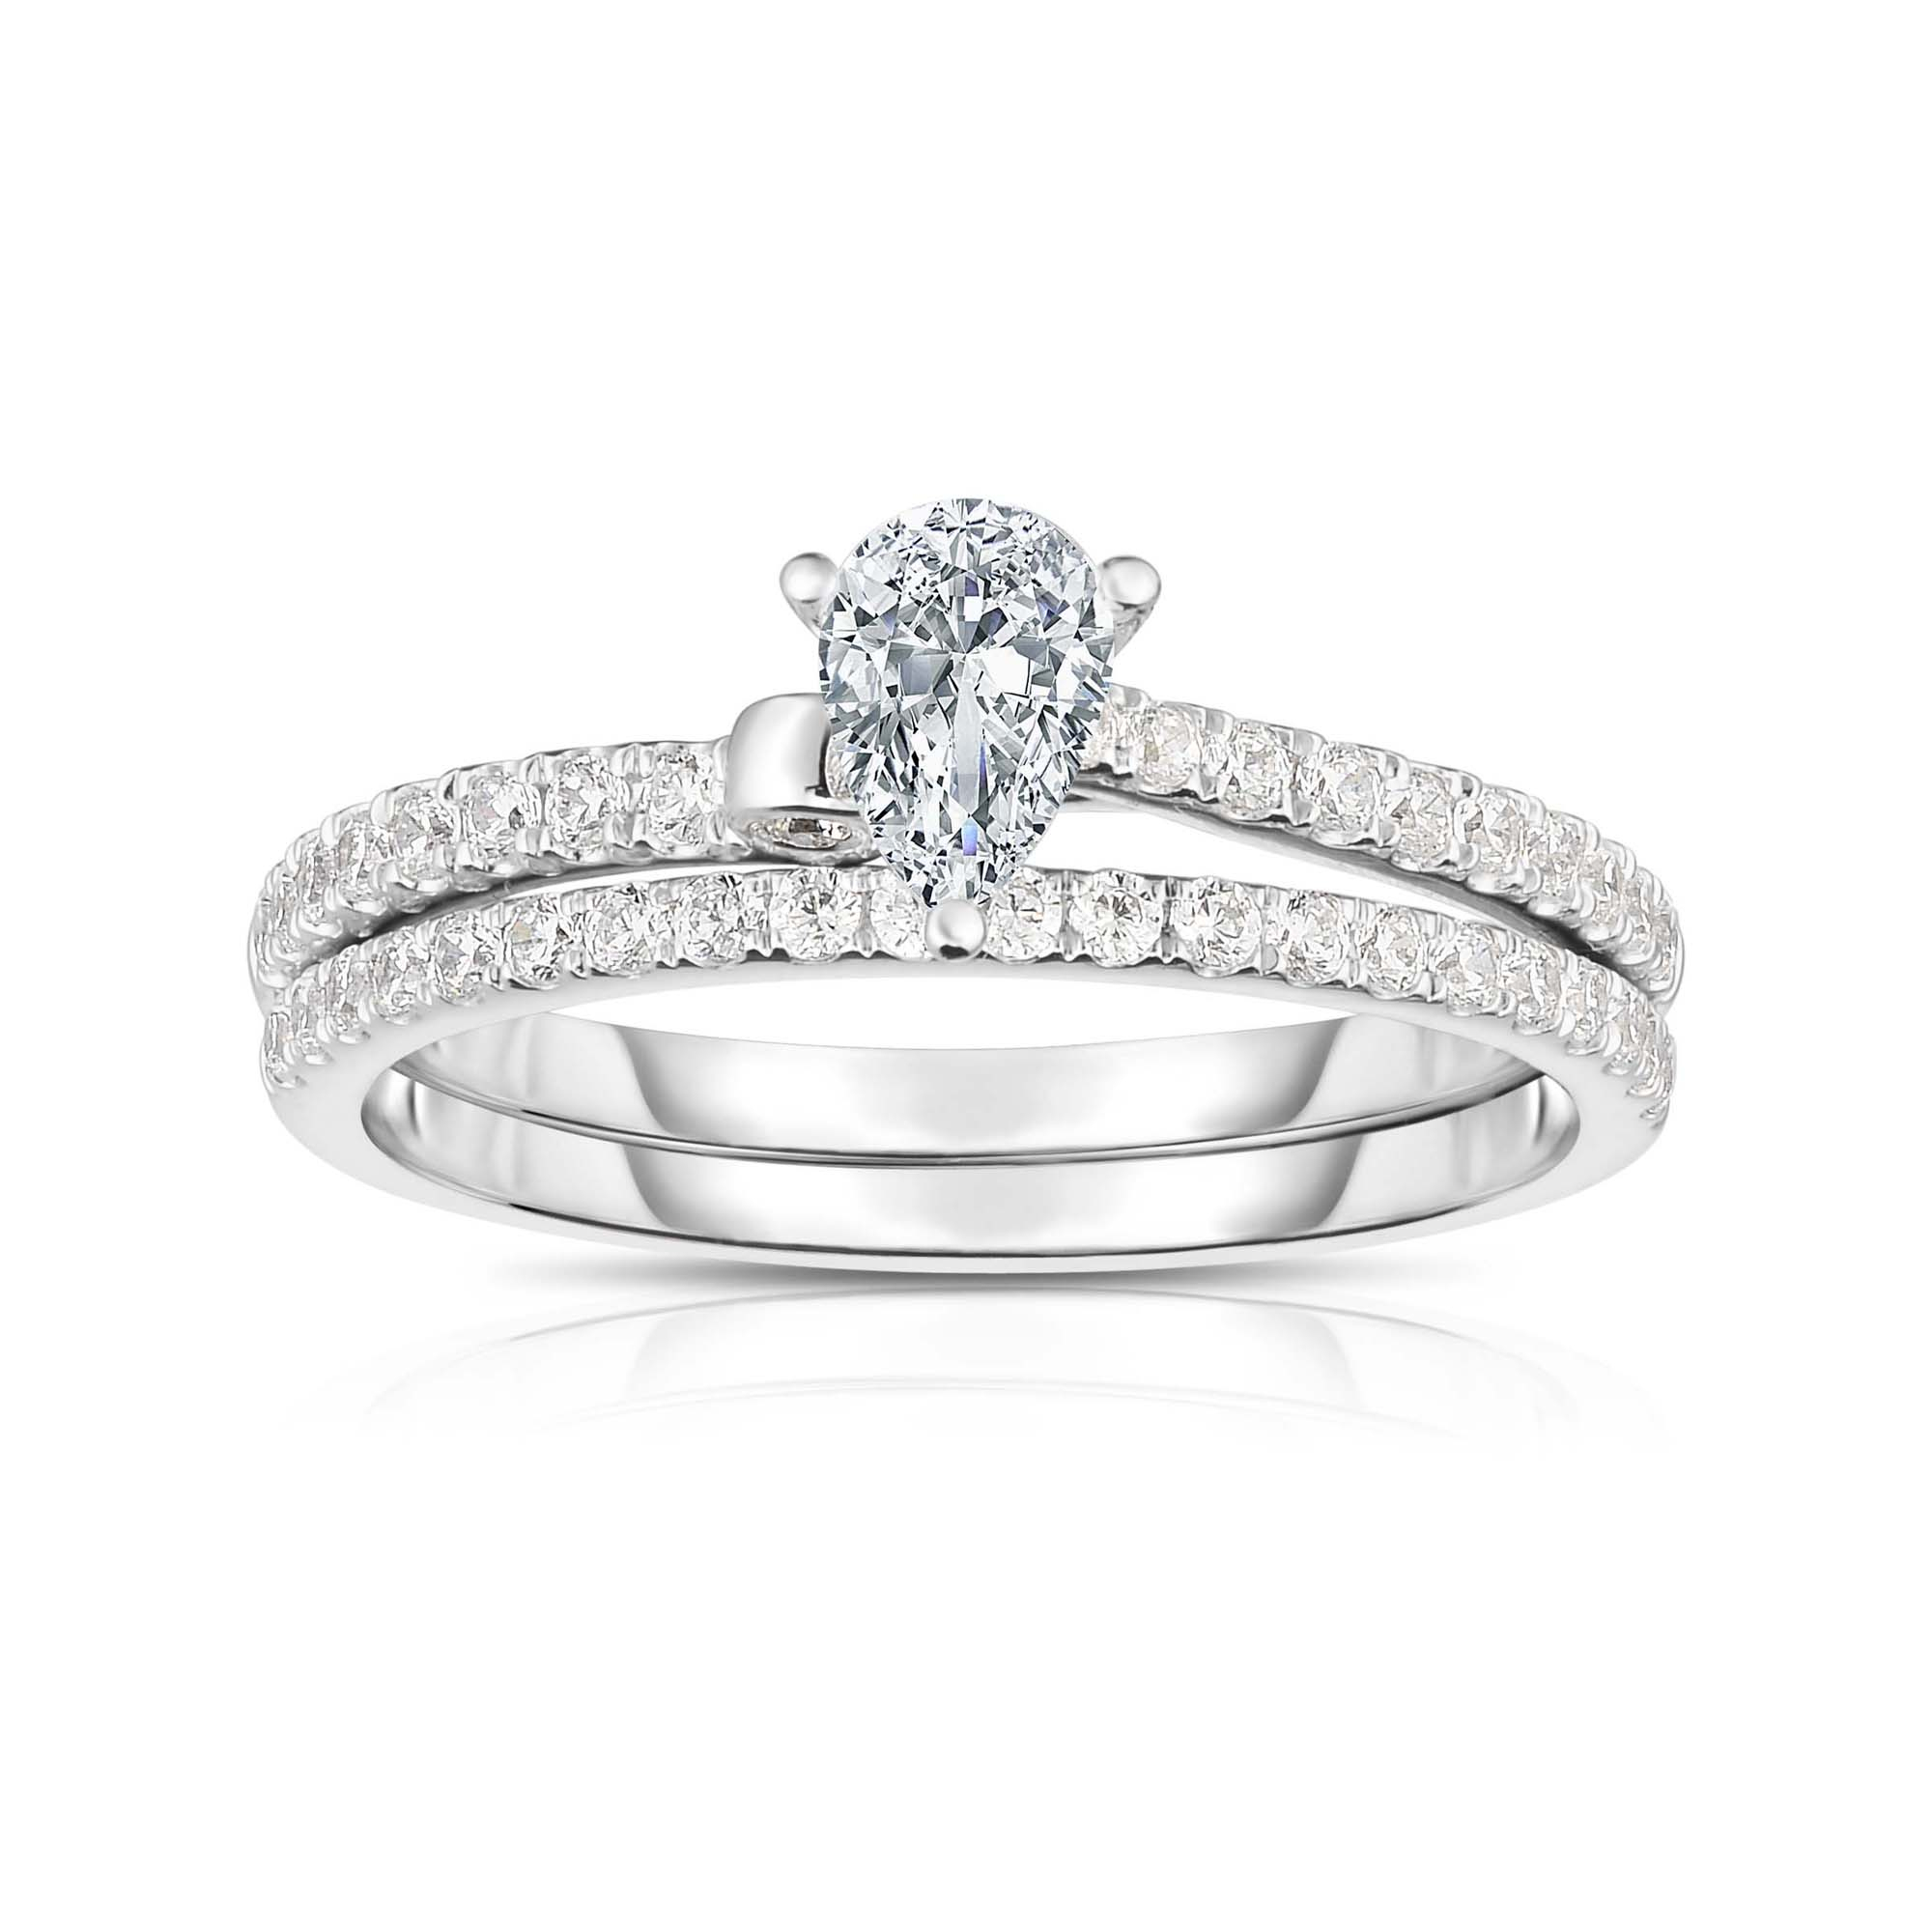 Adrianna Papell Pear Shaped Diamond Engagement Ring For Tryst Pear Shaped Diamond Engagement Rings (View 8 of 25)